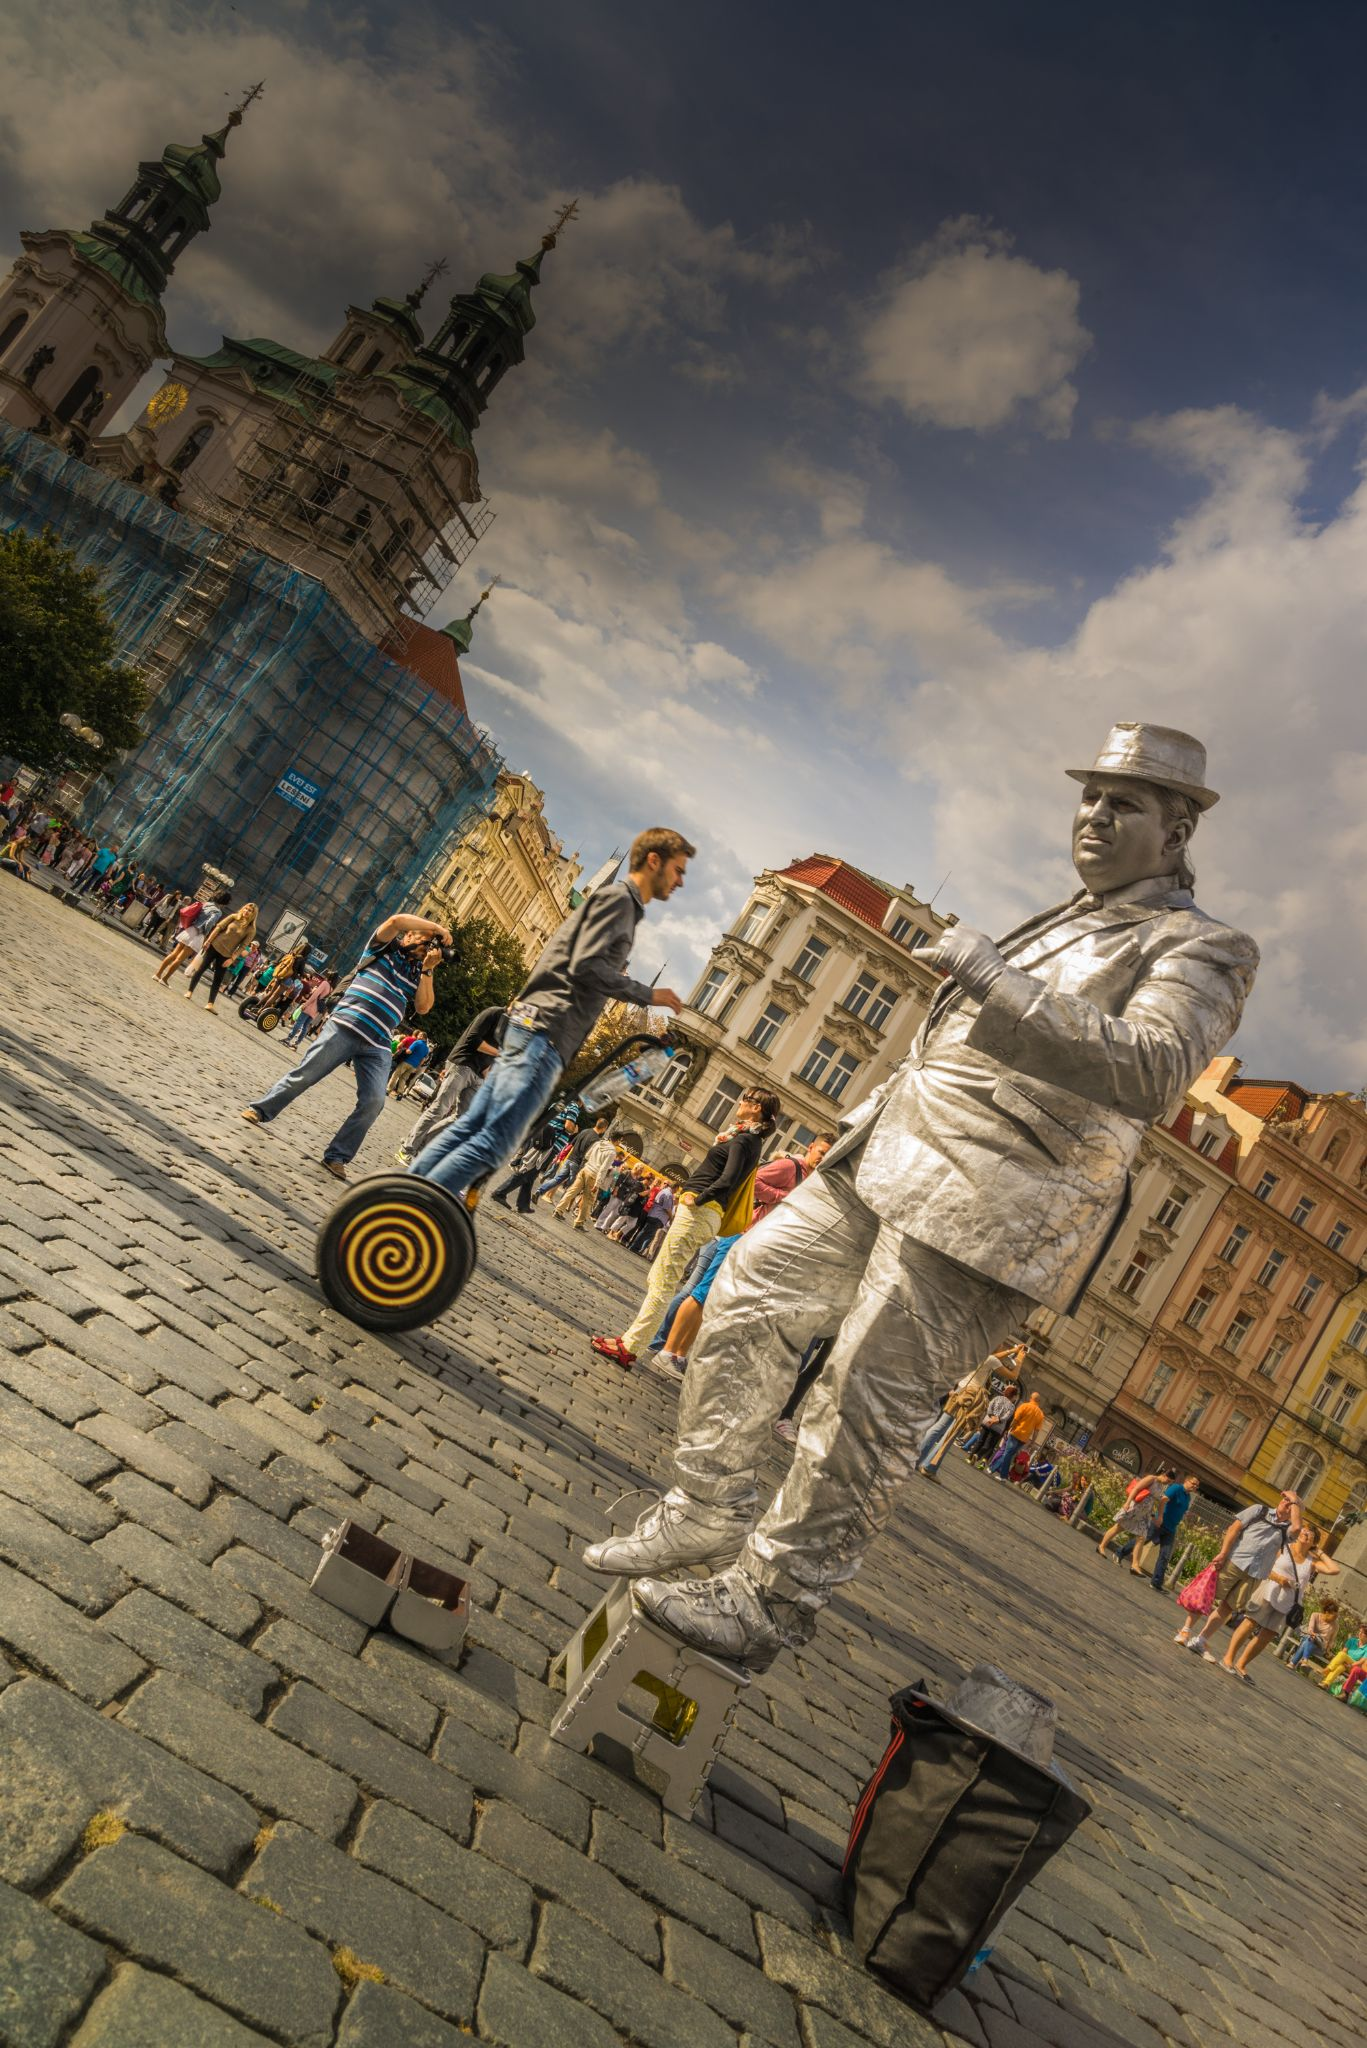 Living Statue in Prague by kosherfrog